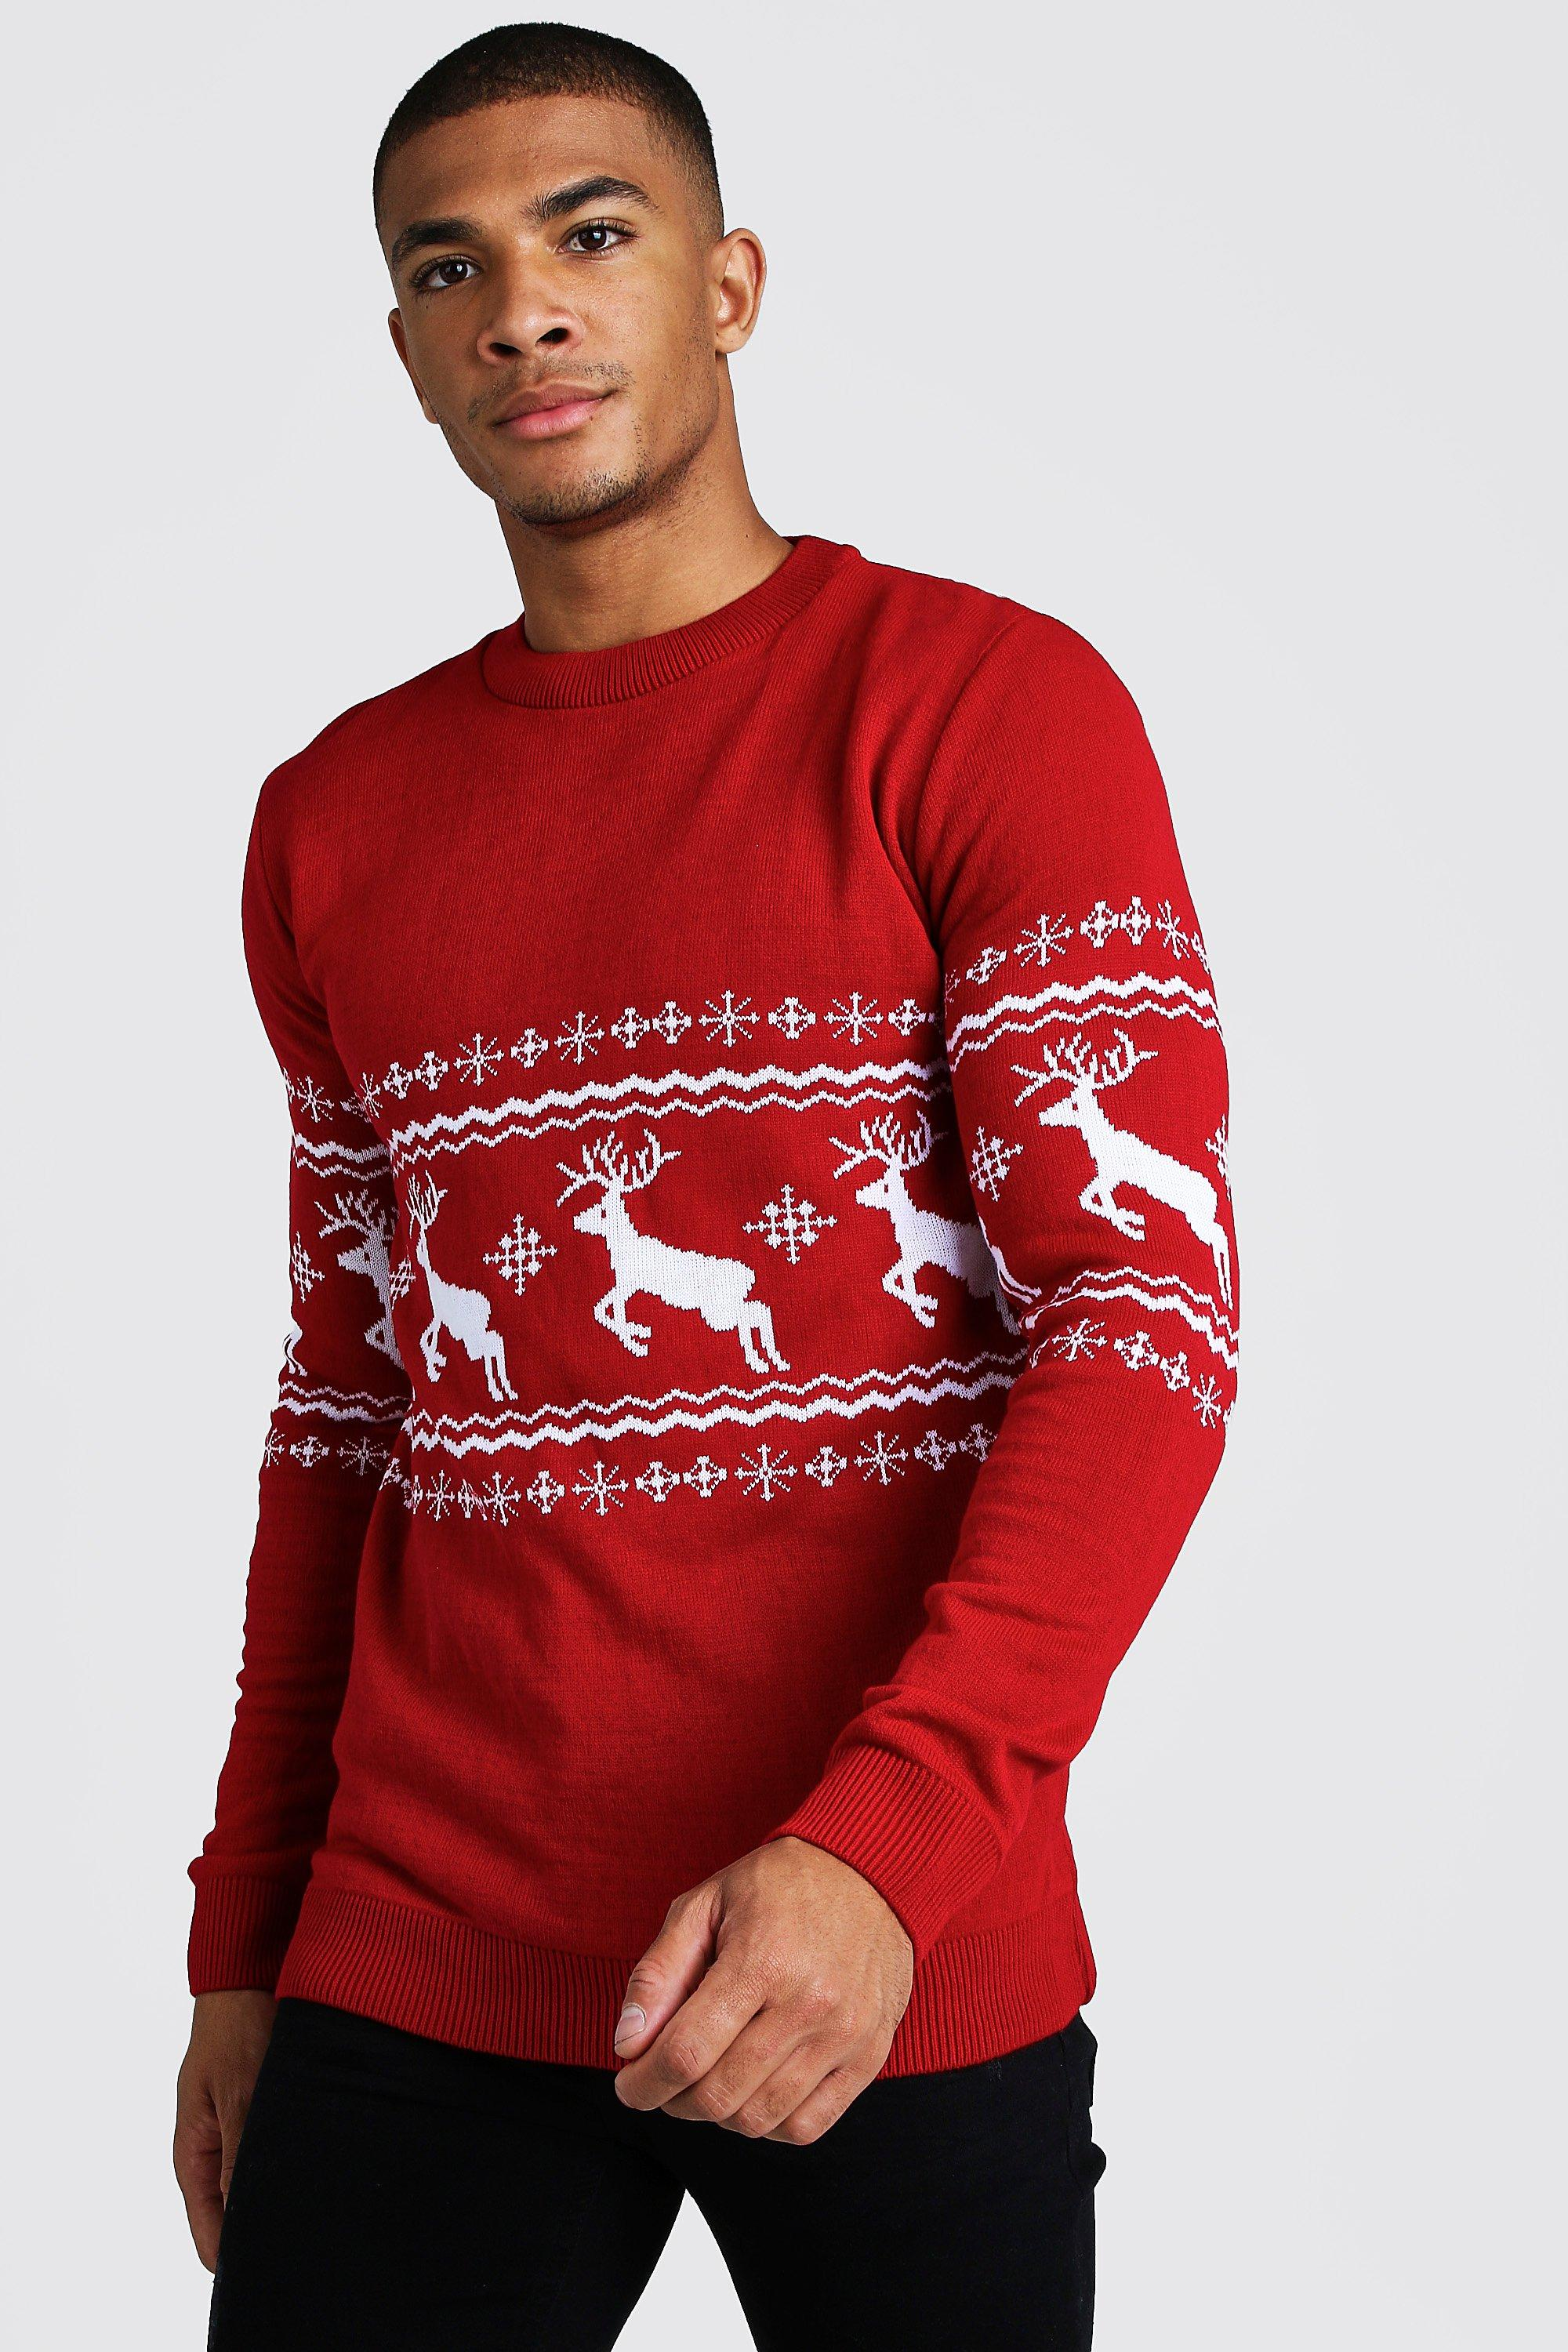 1940s Style Mens Shirts, Sweaters, Vests Mens Muscle Fit Reindeer Fairisle Christmas Sweater - Red $32.00 AT vintagedancer.com